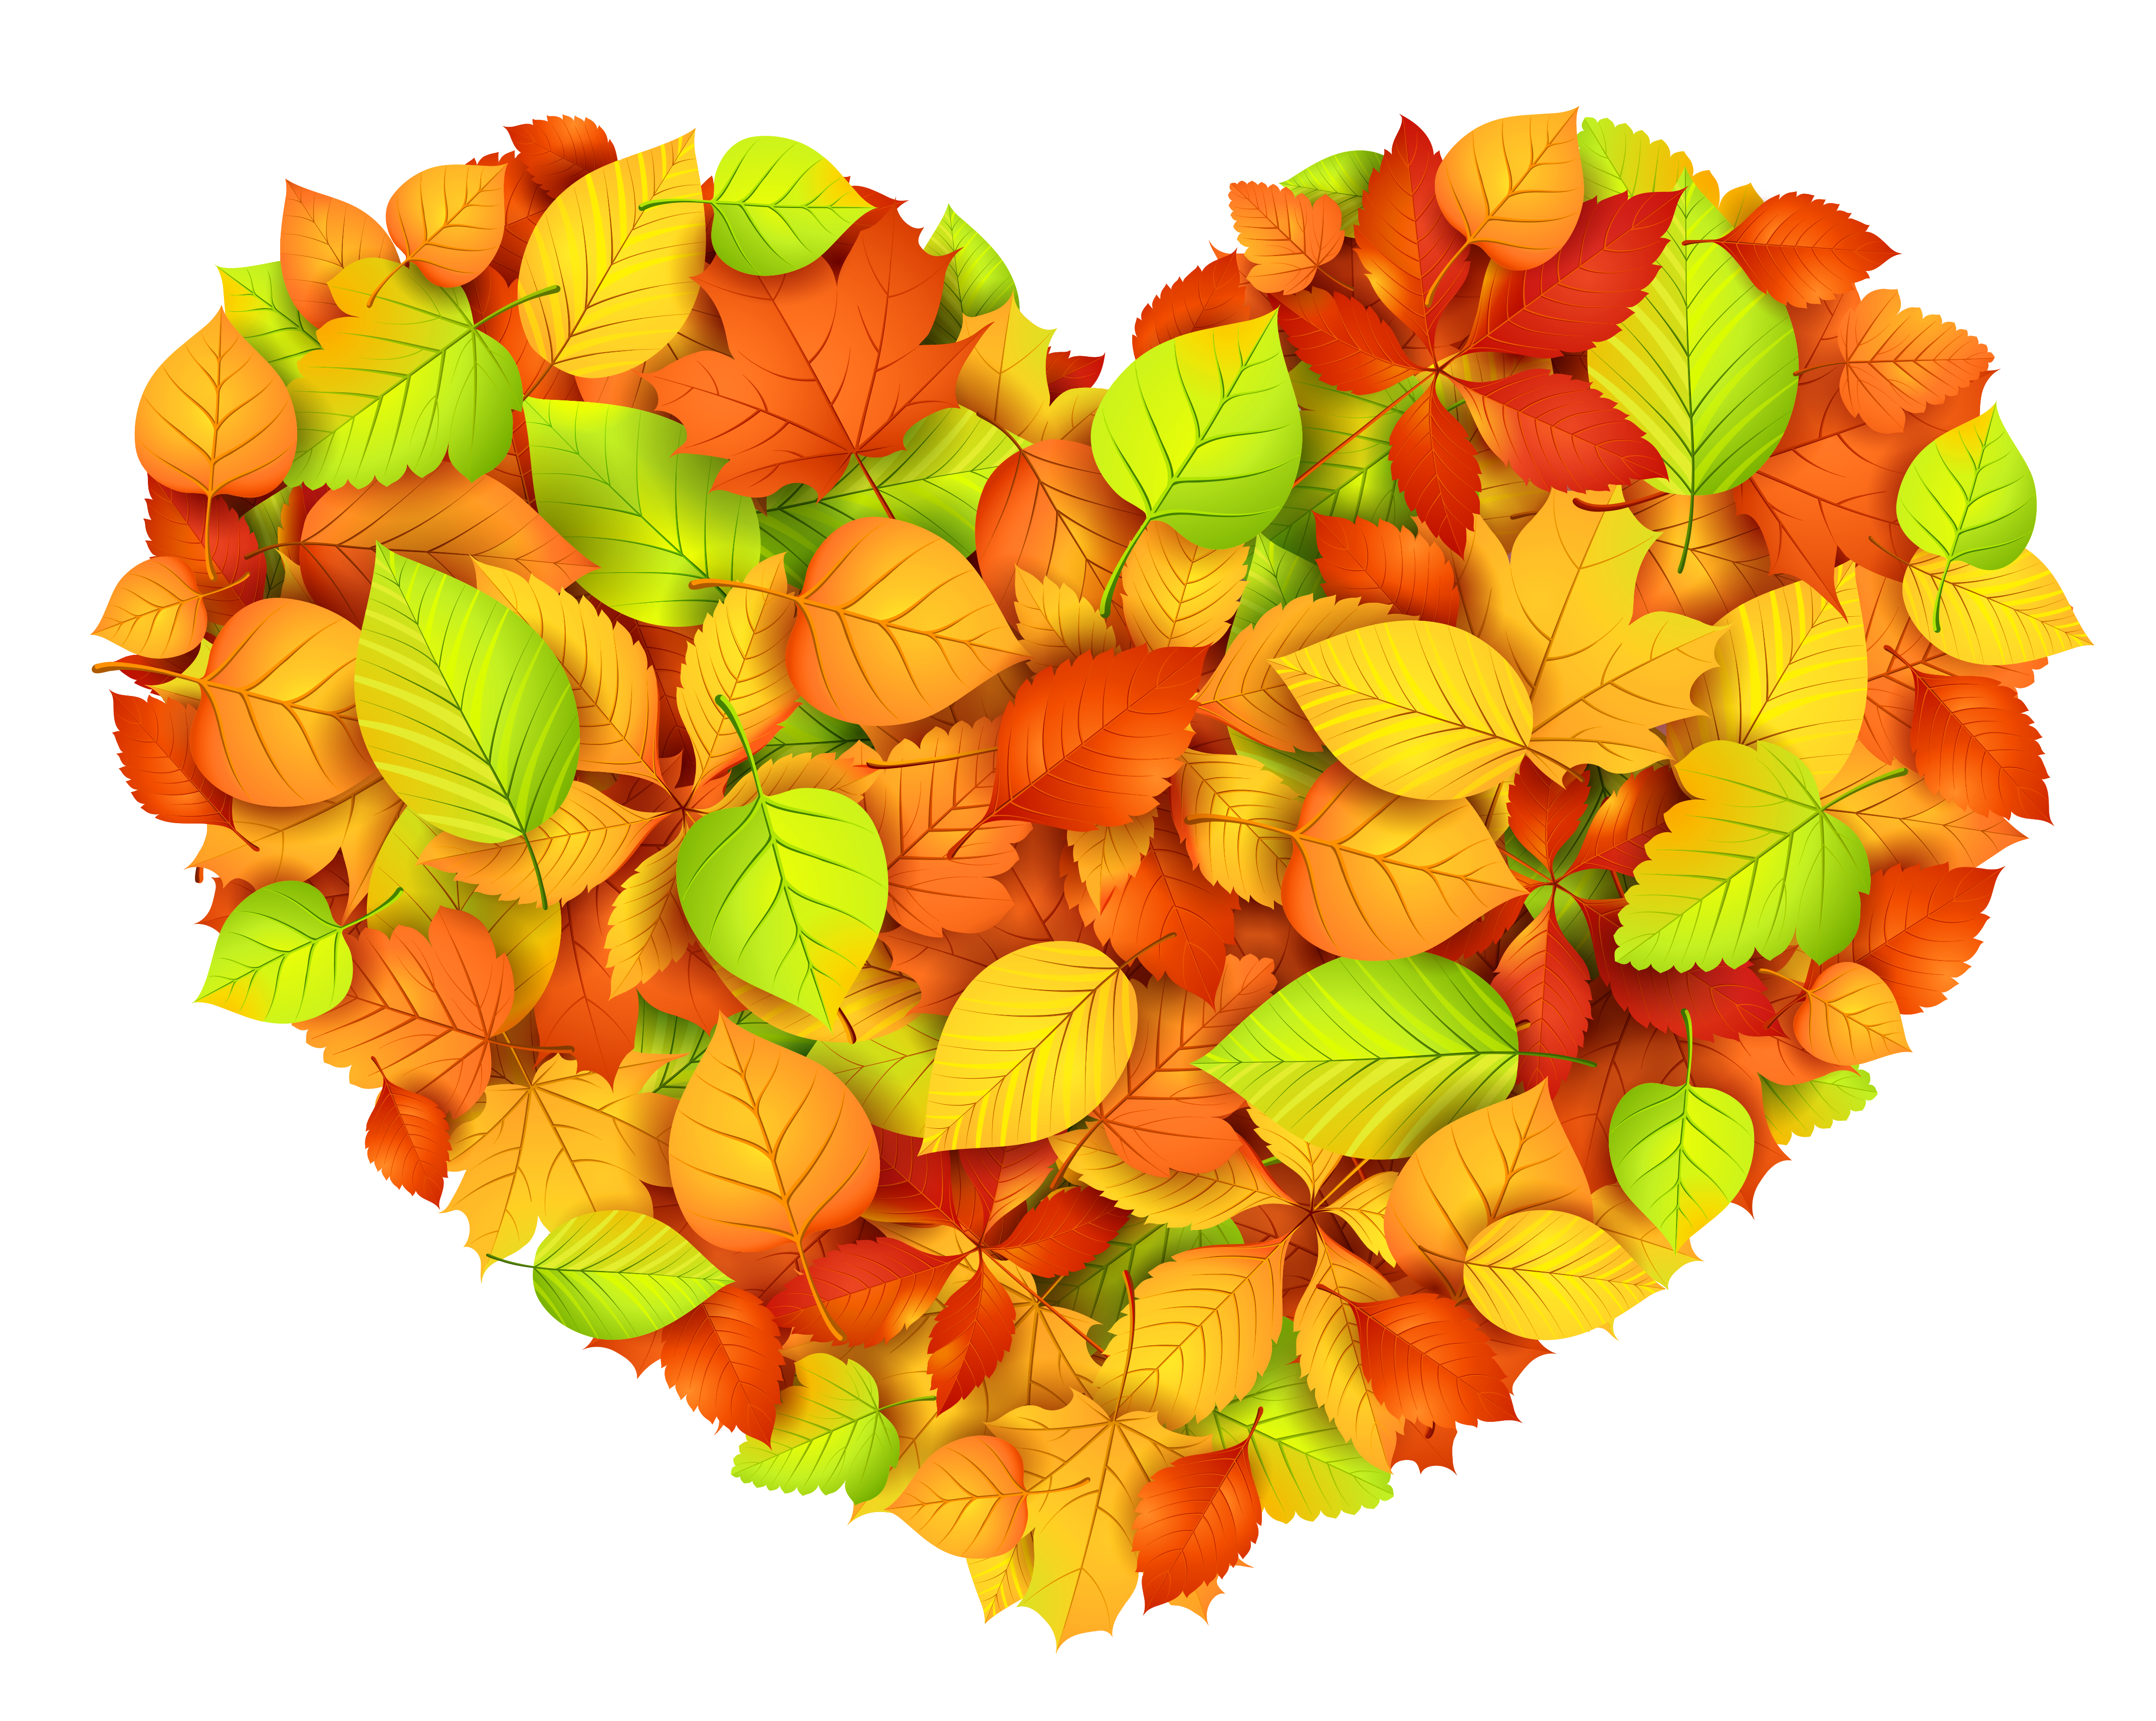 Heart of Autumn Leaves Decor Transparent Picture.